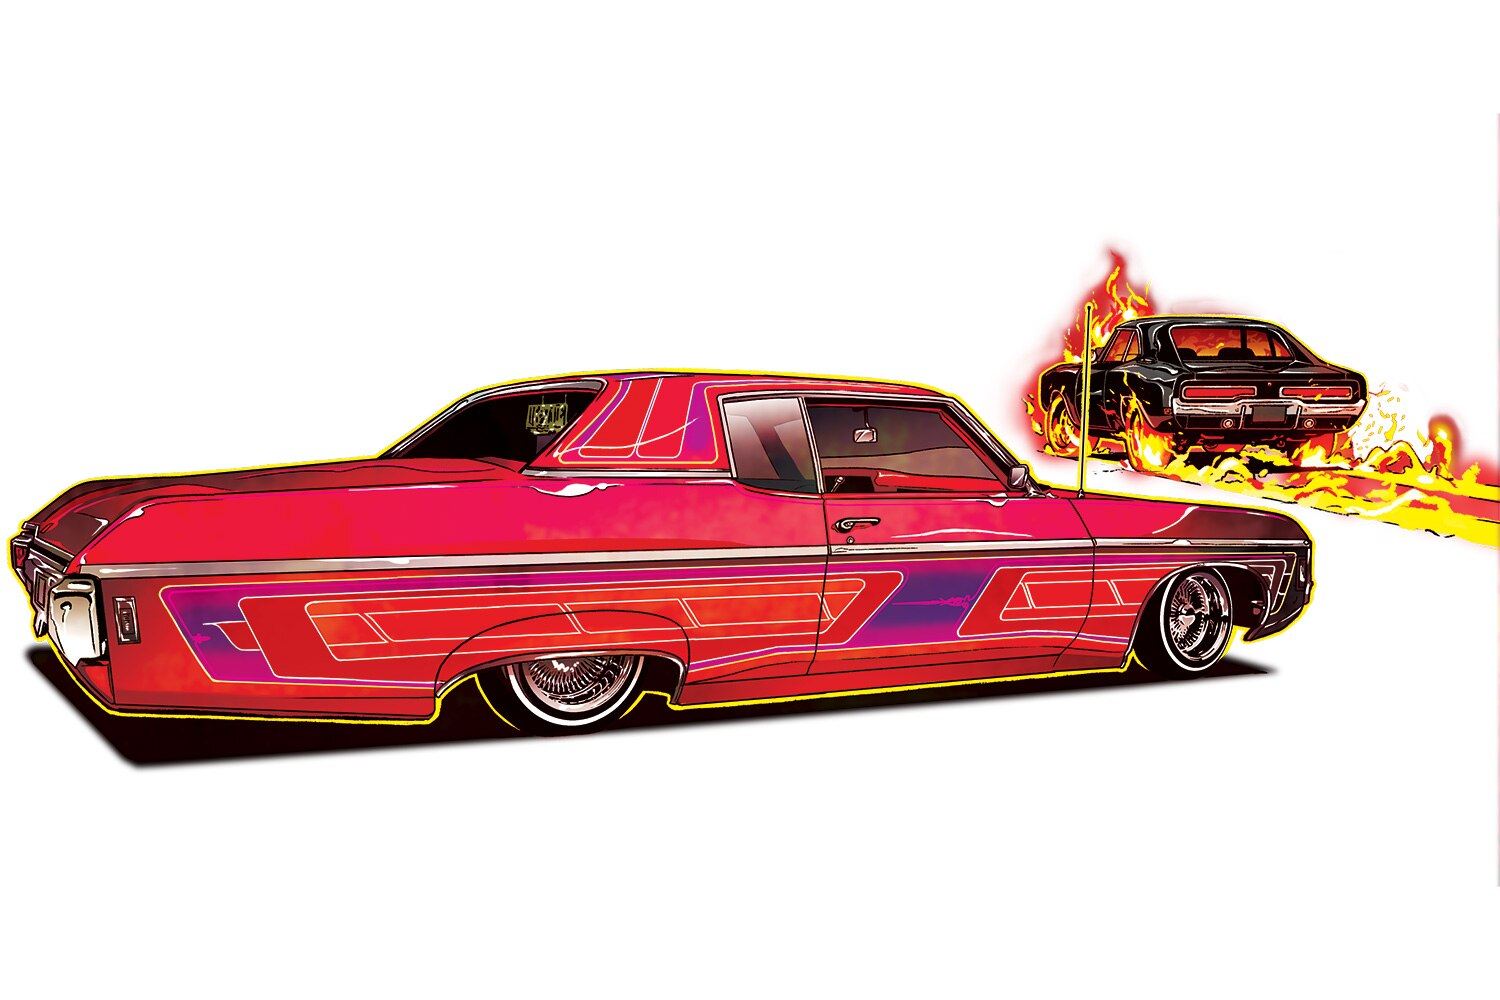 june-2014-editors-letter-animated-1969-chevrolet-caprice1